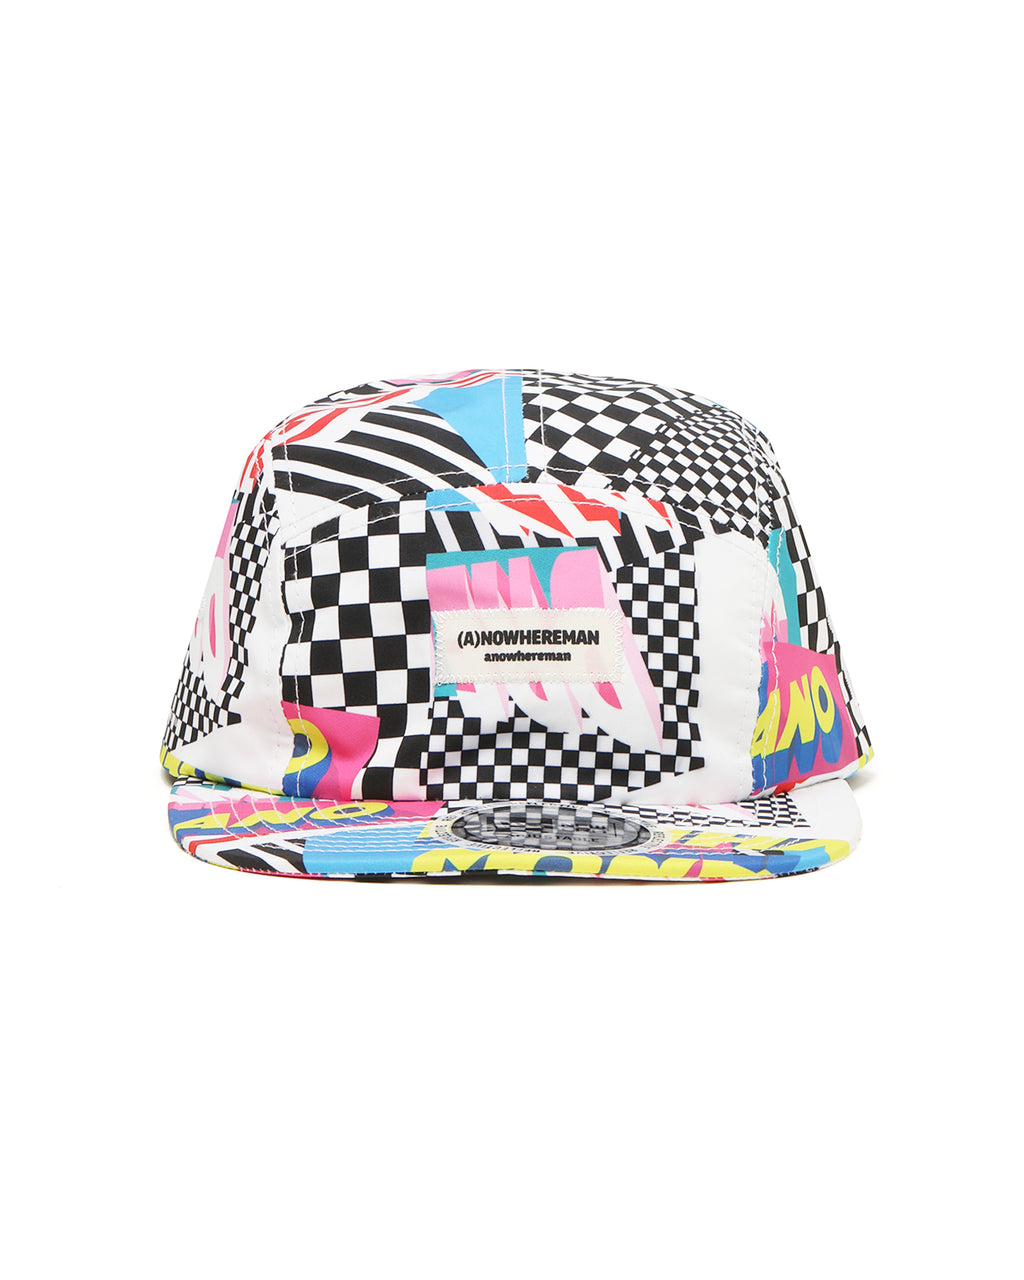 ANOWHEREMAN X NEW ERA CAMPER CAP - PATTERM